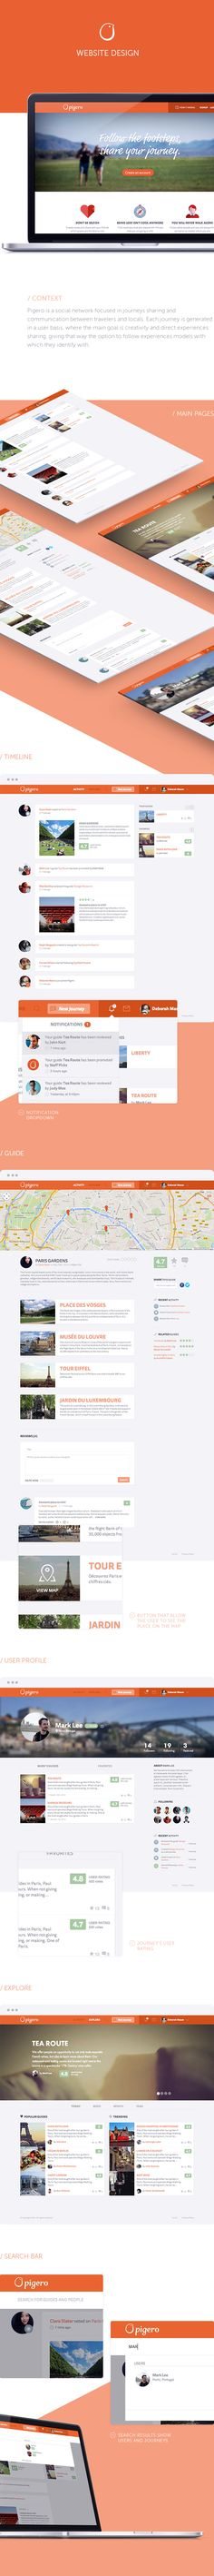 Pigero - social network website design on Behance